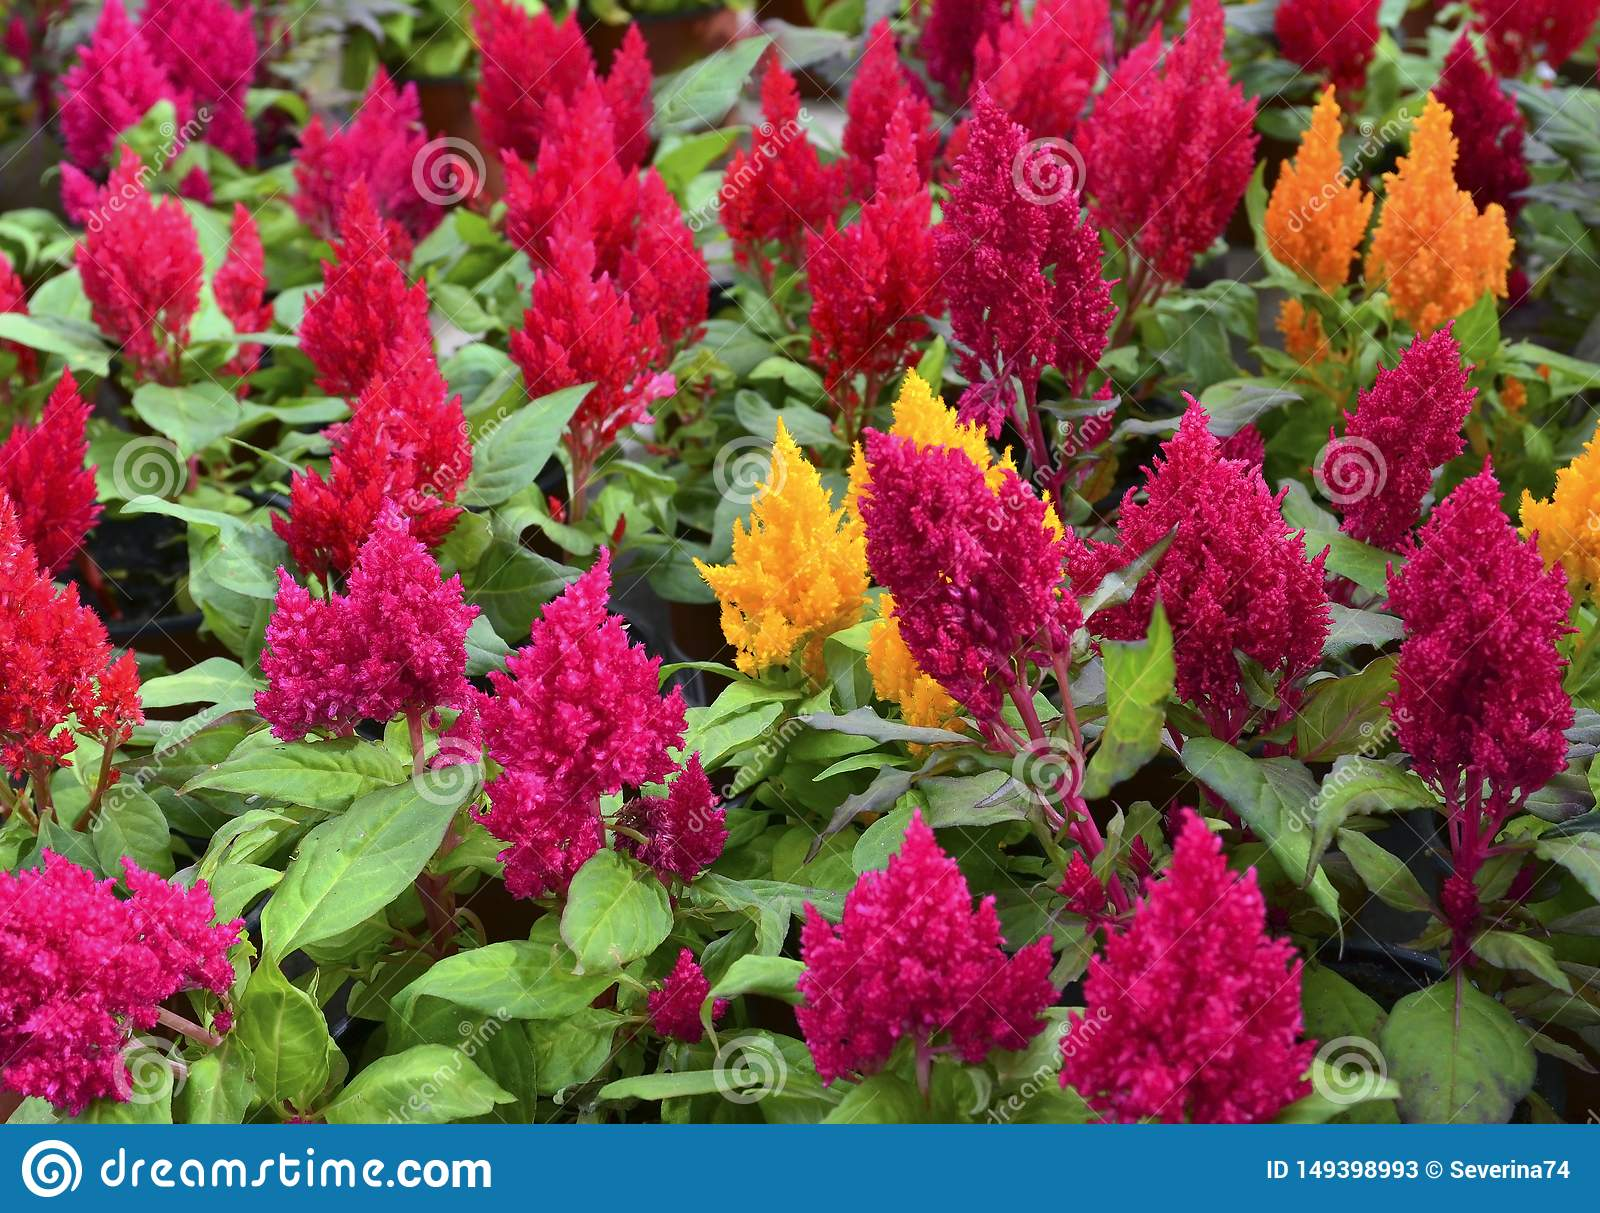 Colorful Celosia Argentea Flowers In The Garden Of Tenerife Canary Islands Spain Blooming Cockscomb Plants Stock Image Image Of Celosia Green 149398993